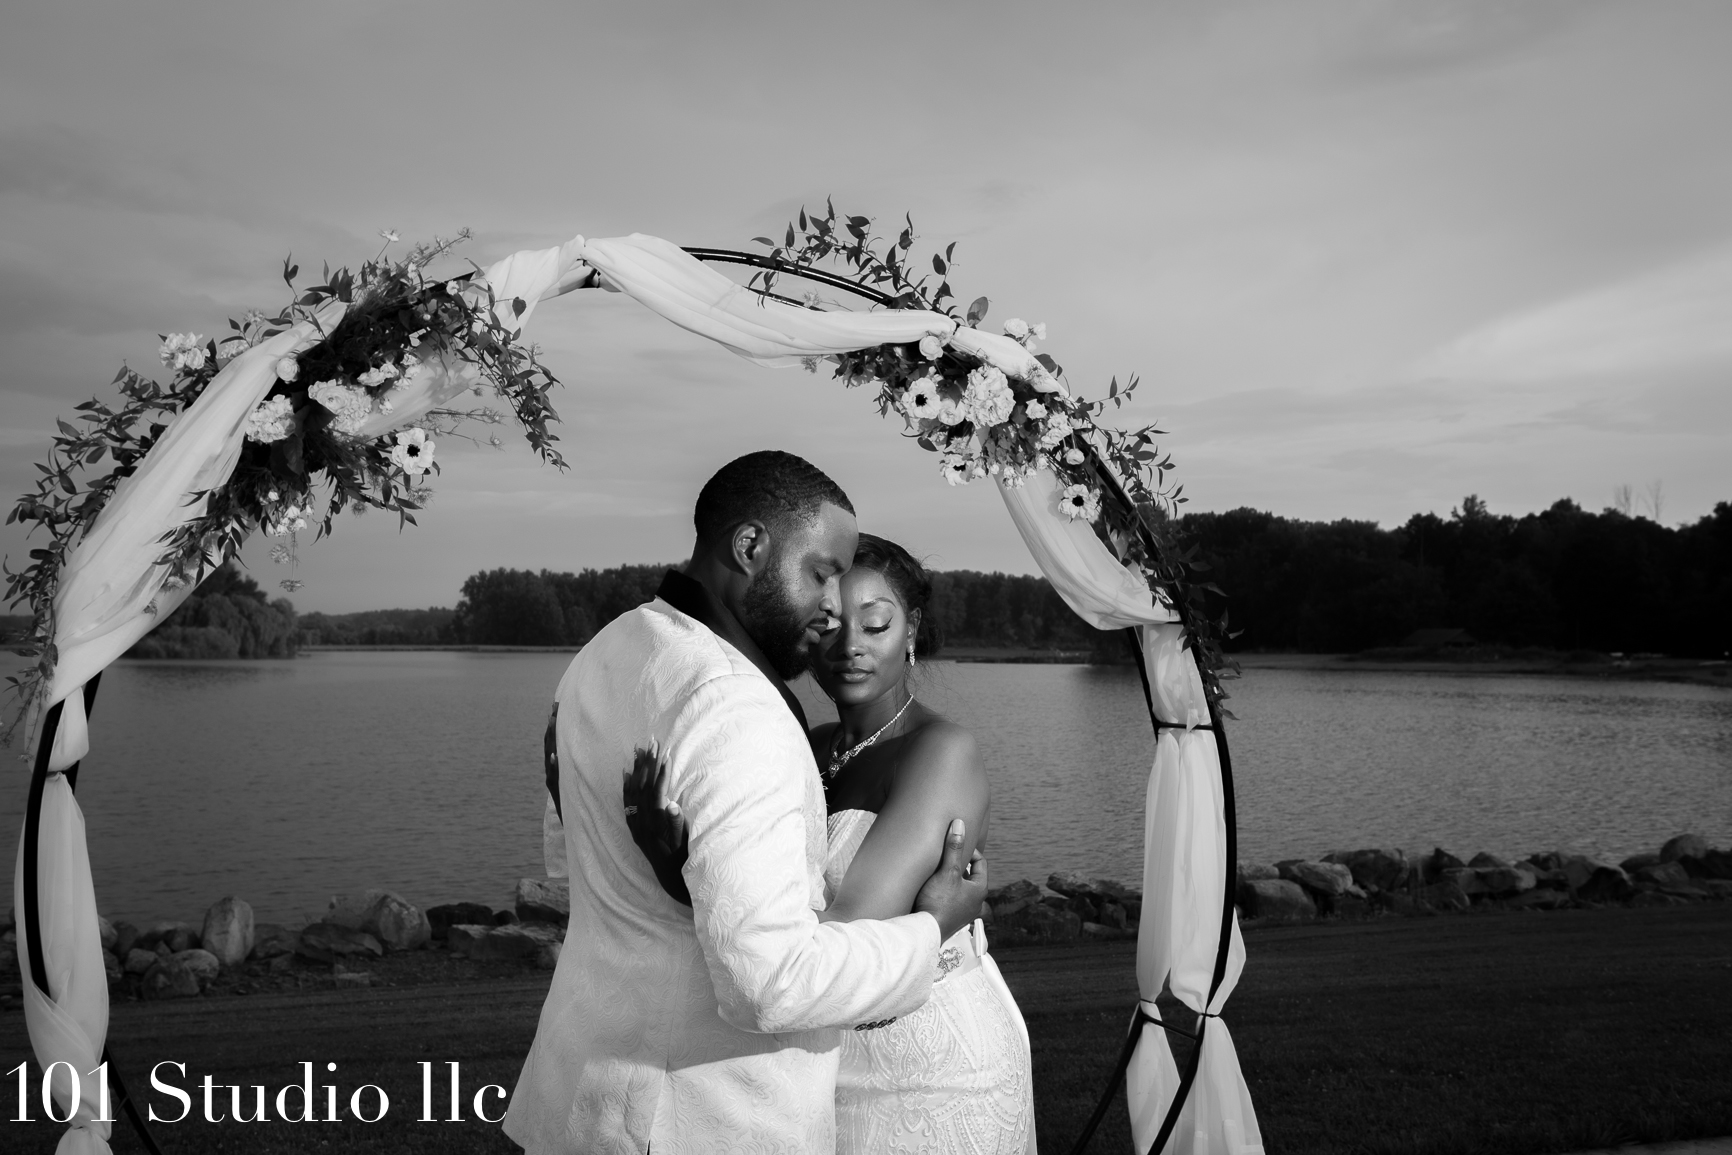 Raleigh wedding photographer - 101 studio llc -36.jpg